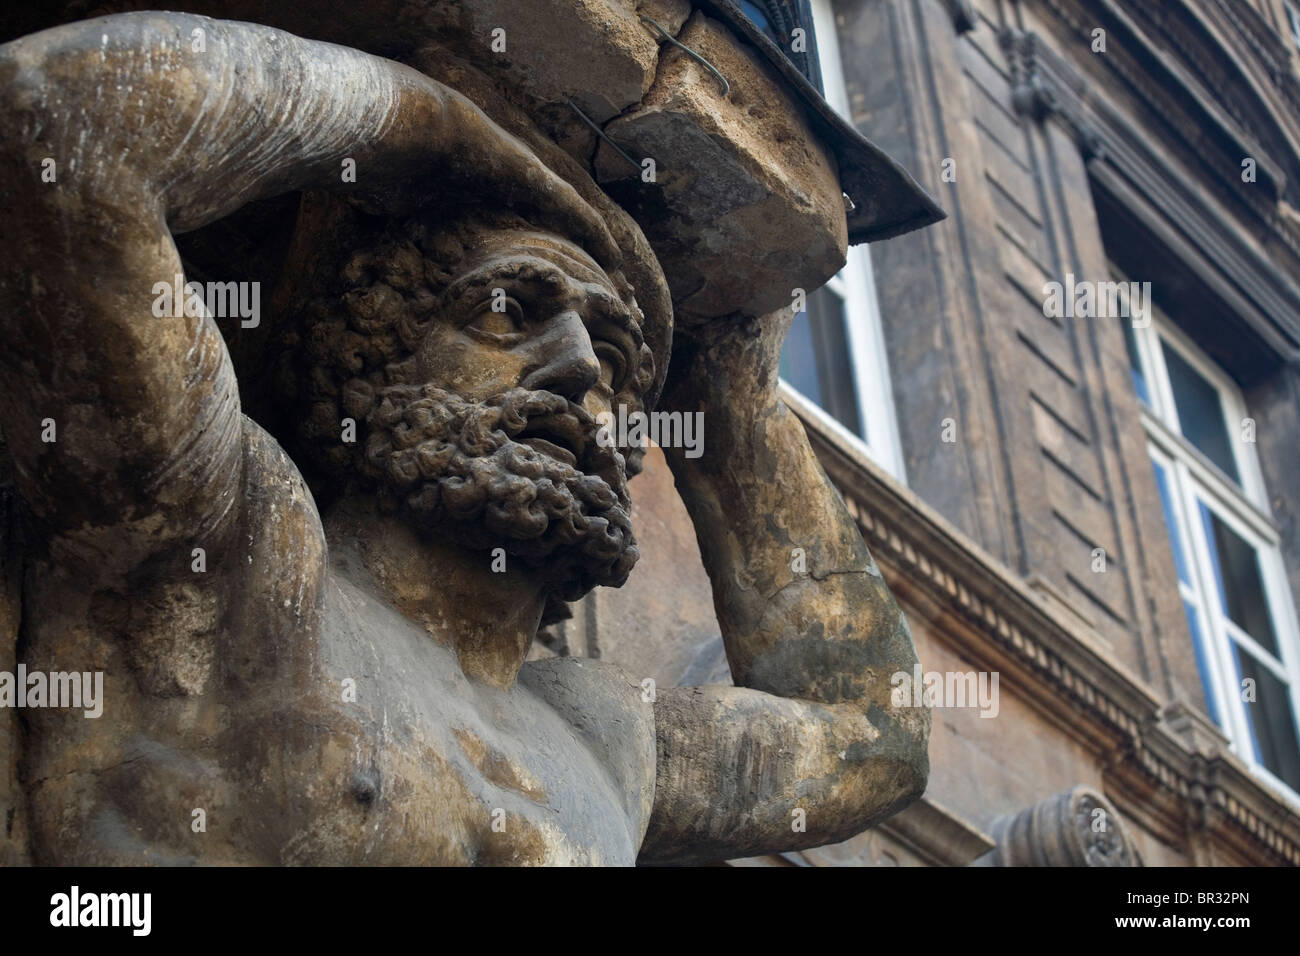 Enormous statue of a man holds a balcony with his head. - Stock Image